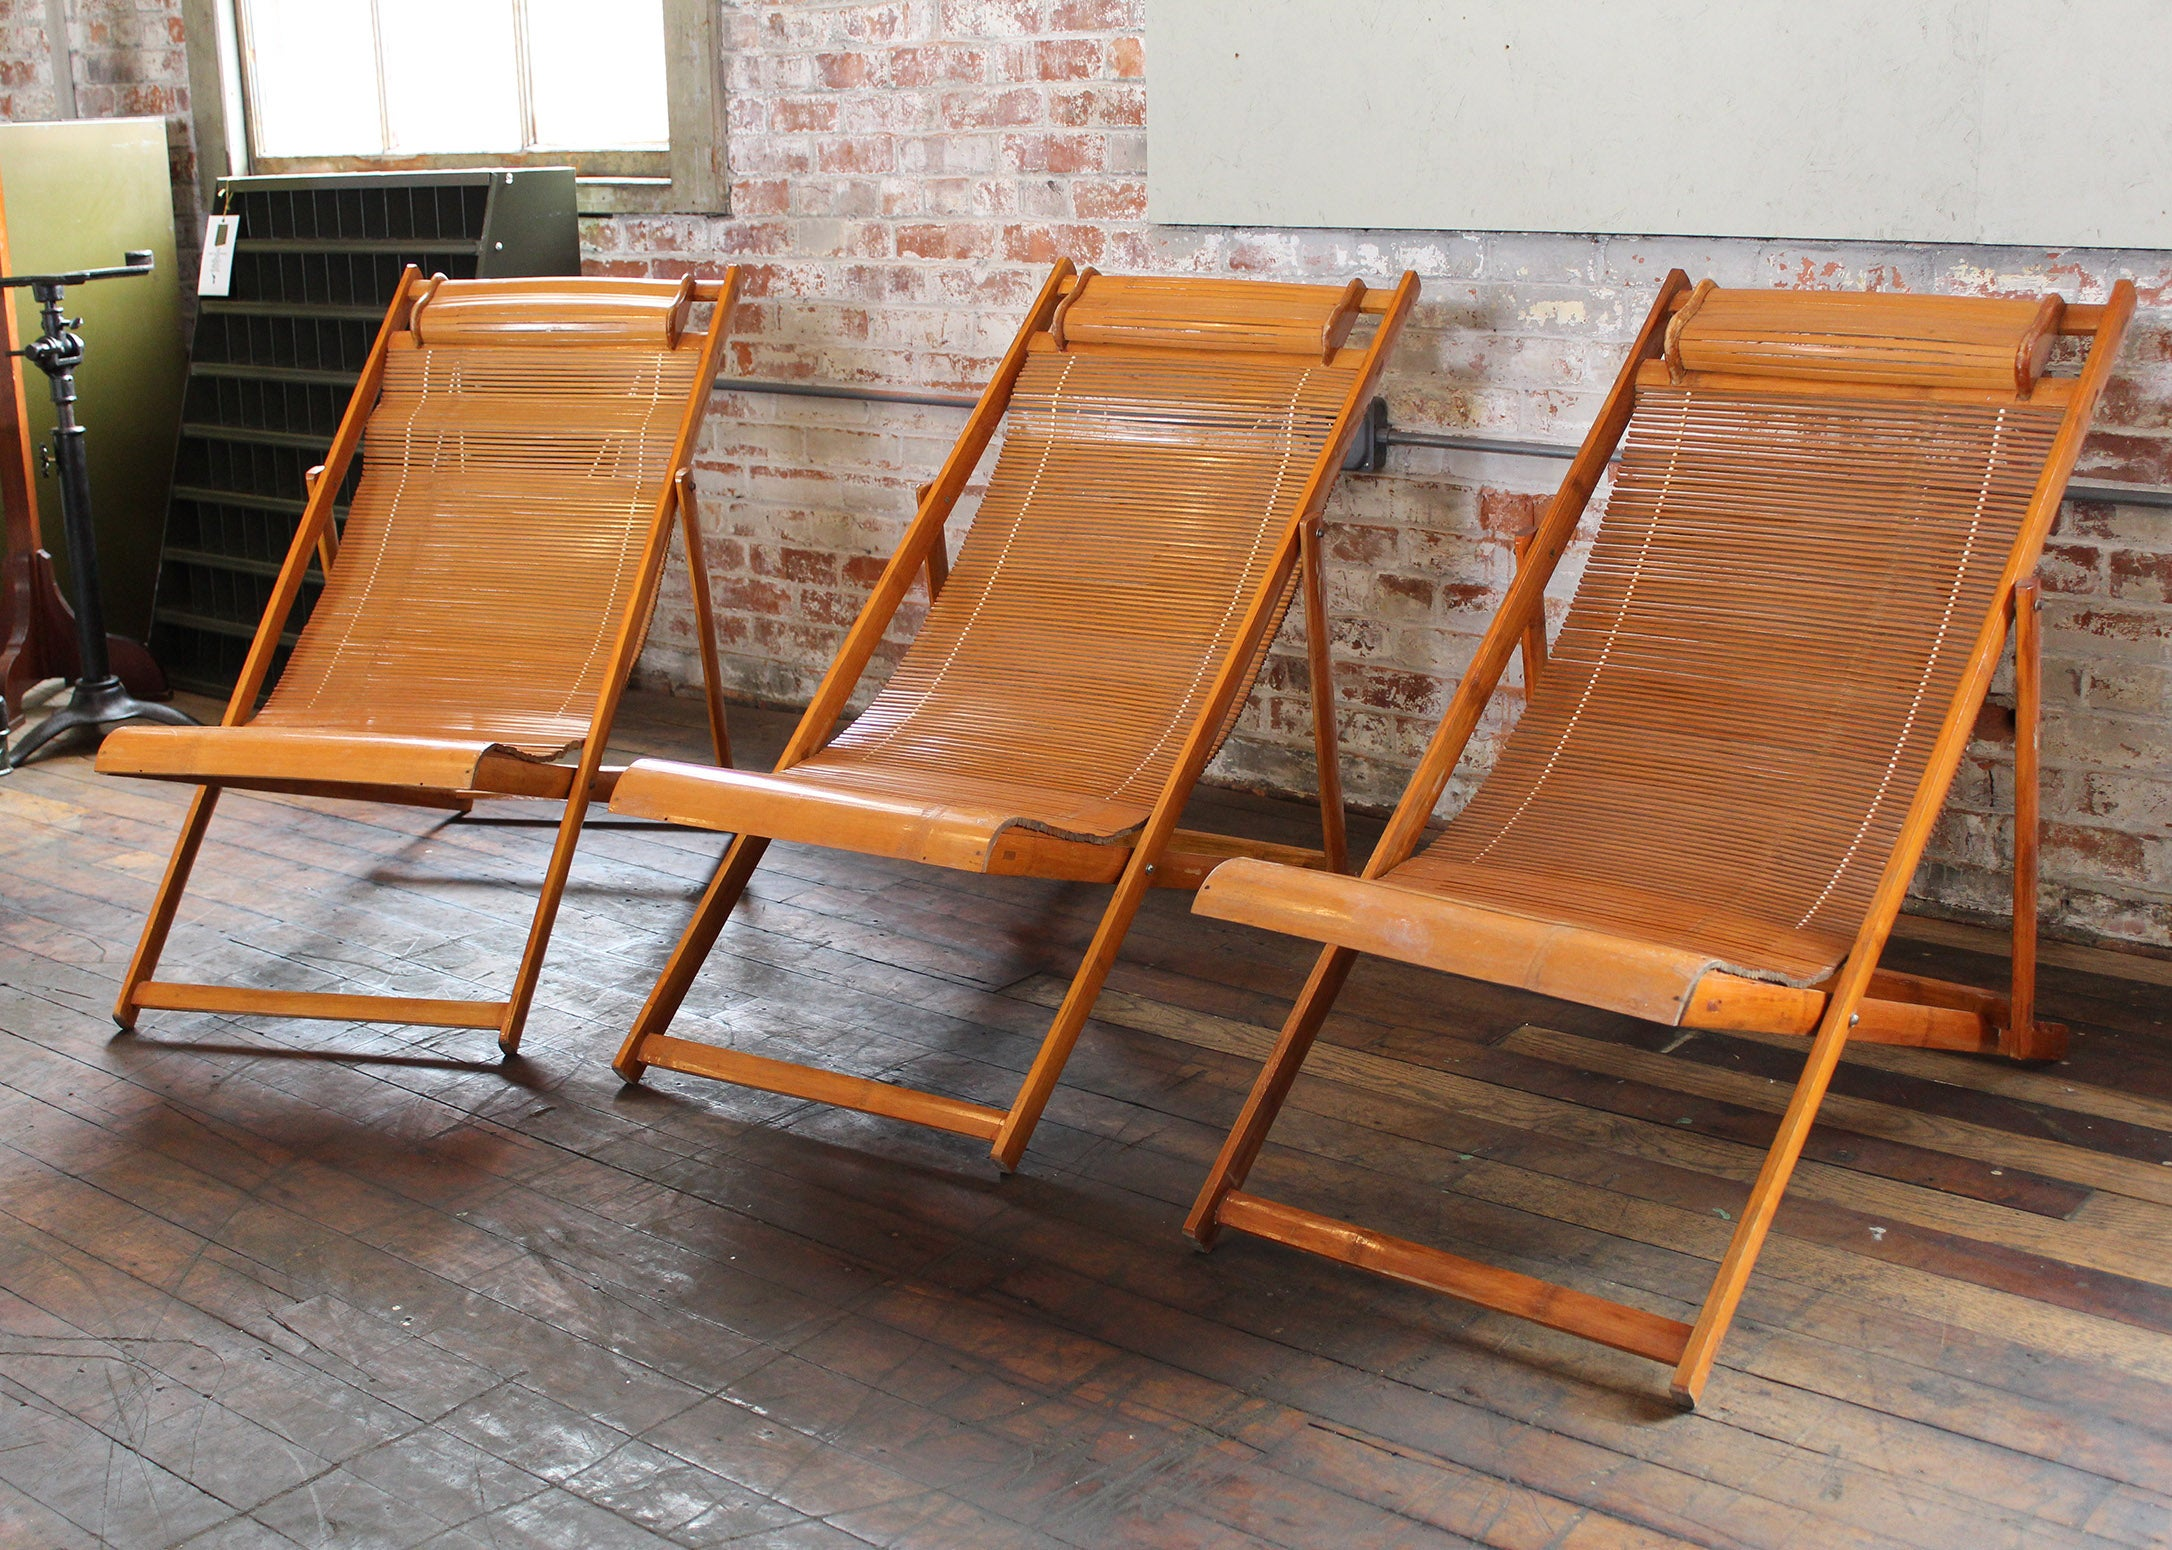 Exceptionnel Vintage Bamboo Loungers Wood Japanese Deck Chairs, Outdoor Fold Up Lounge  Chairs For Sale At 1stdibs